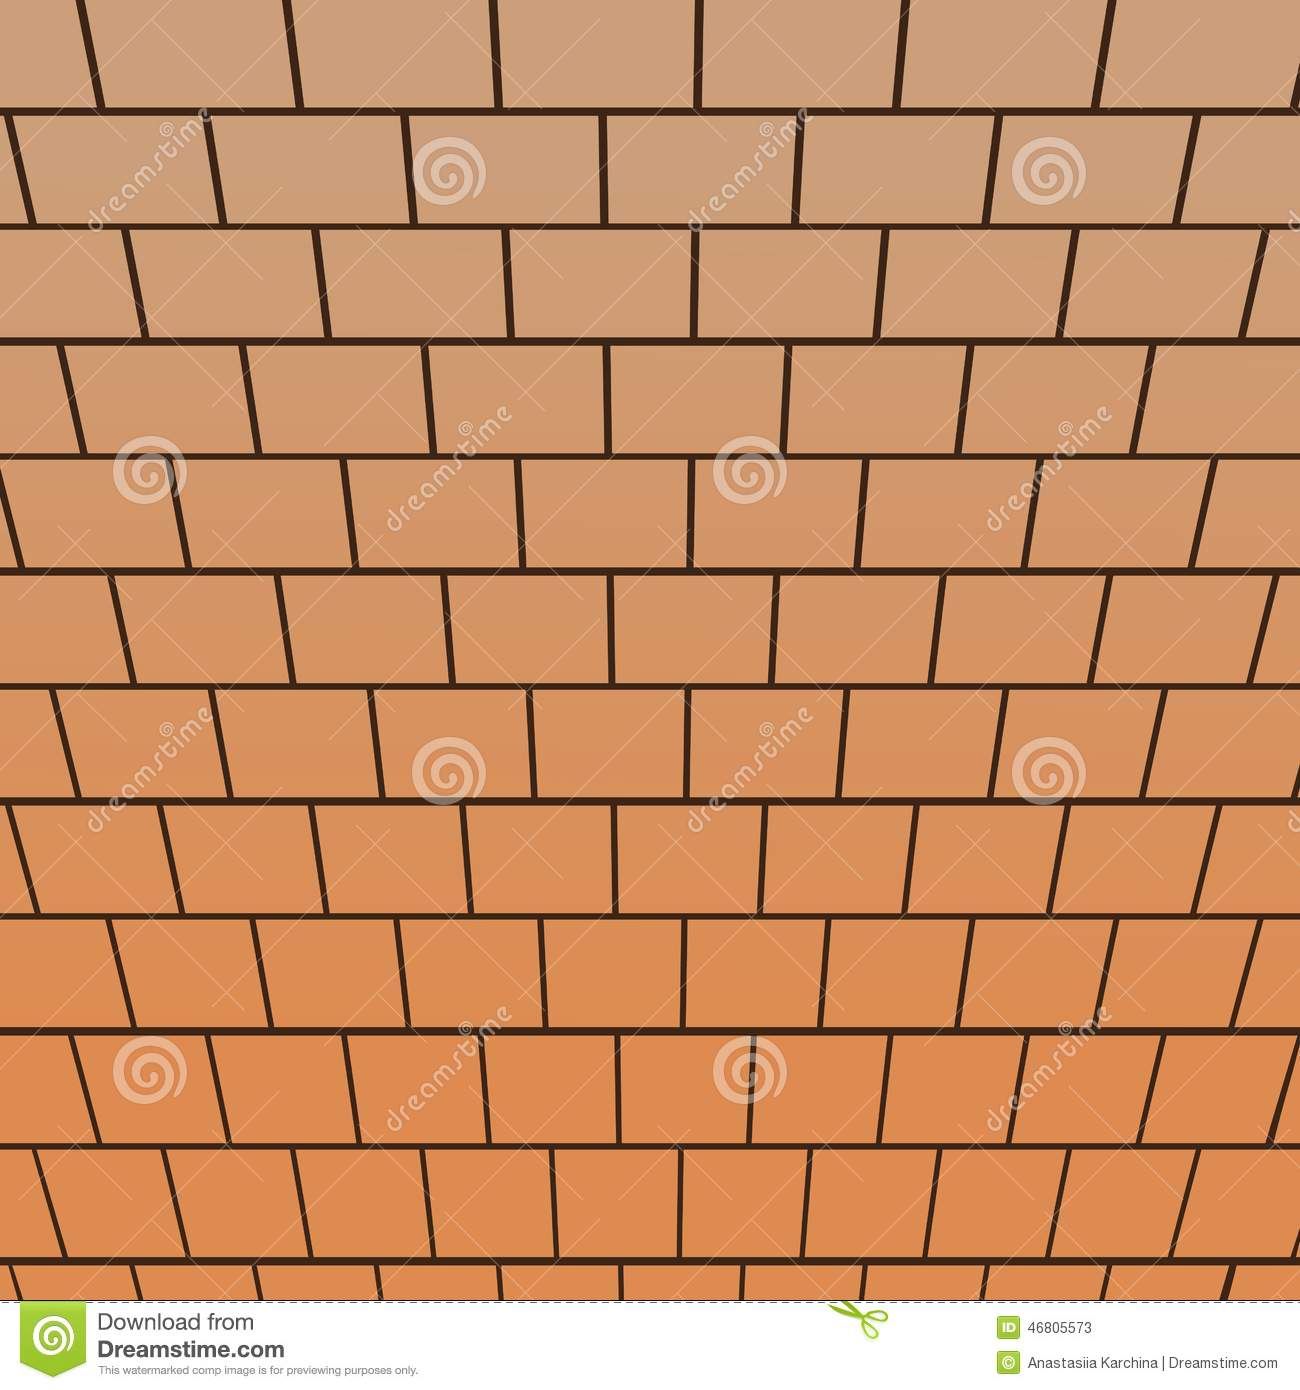 Brick Vector Picture Brick Veneers: Brick Wall, Top-down View Perspective Stock Vector